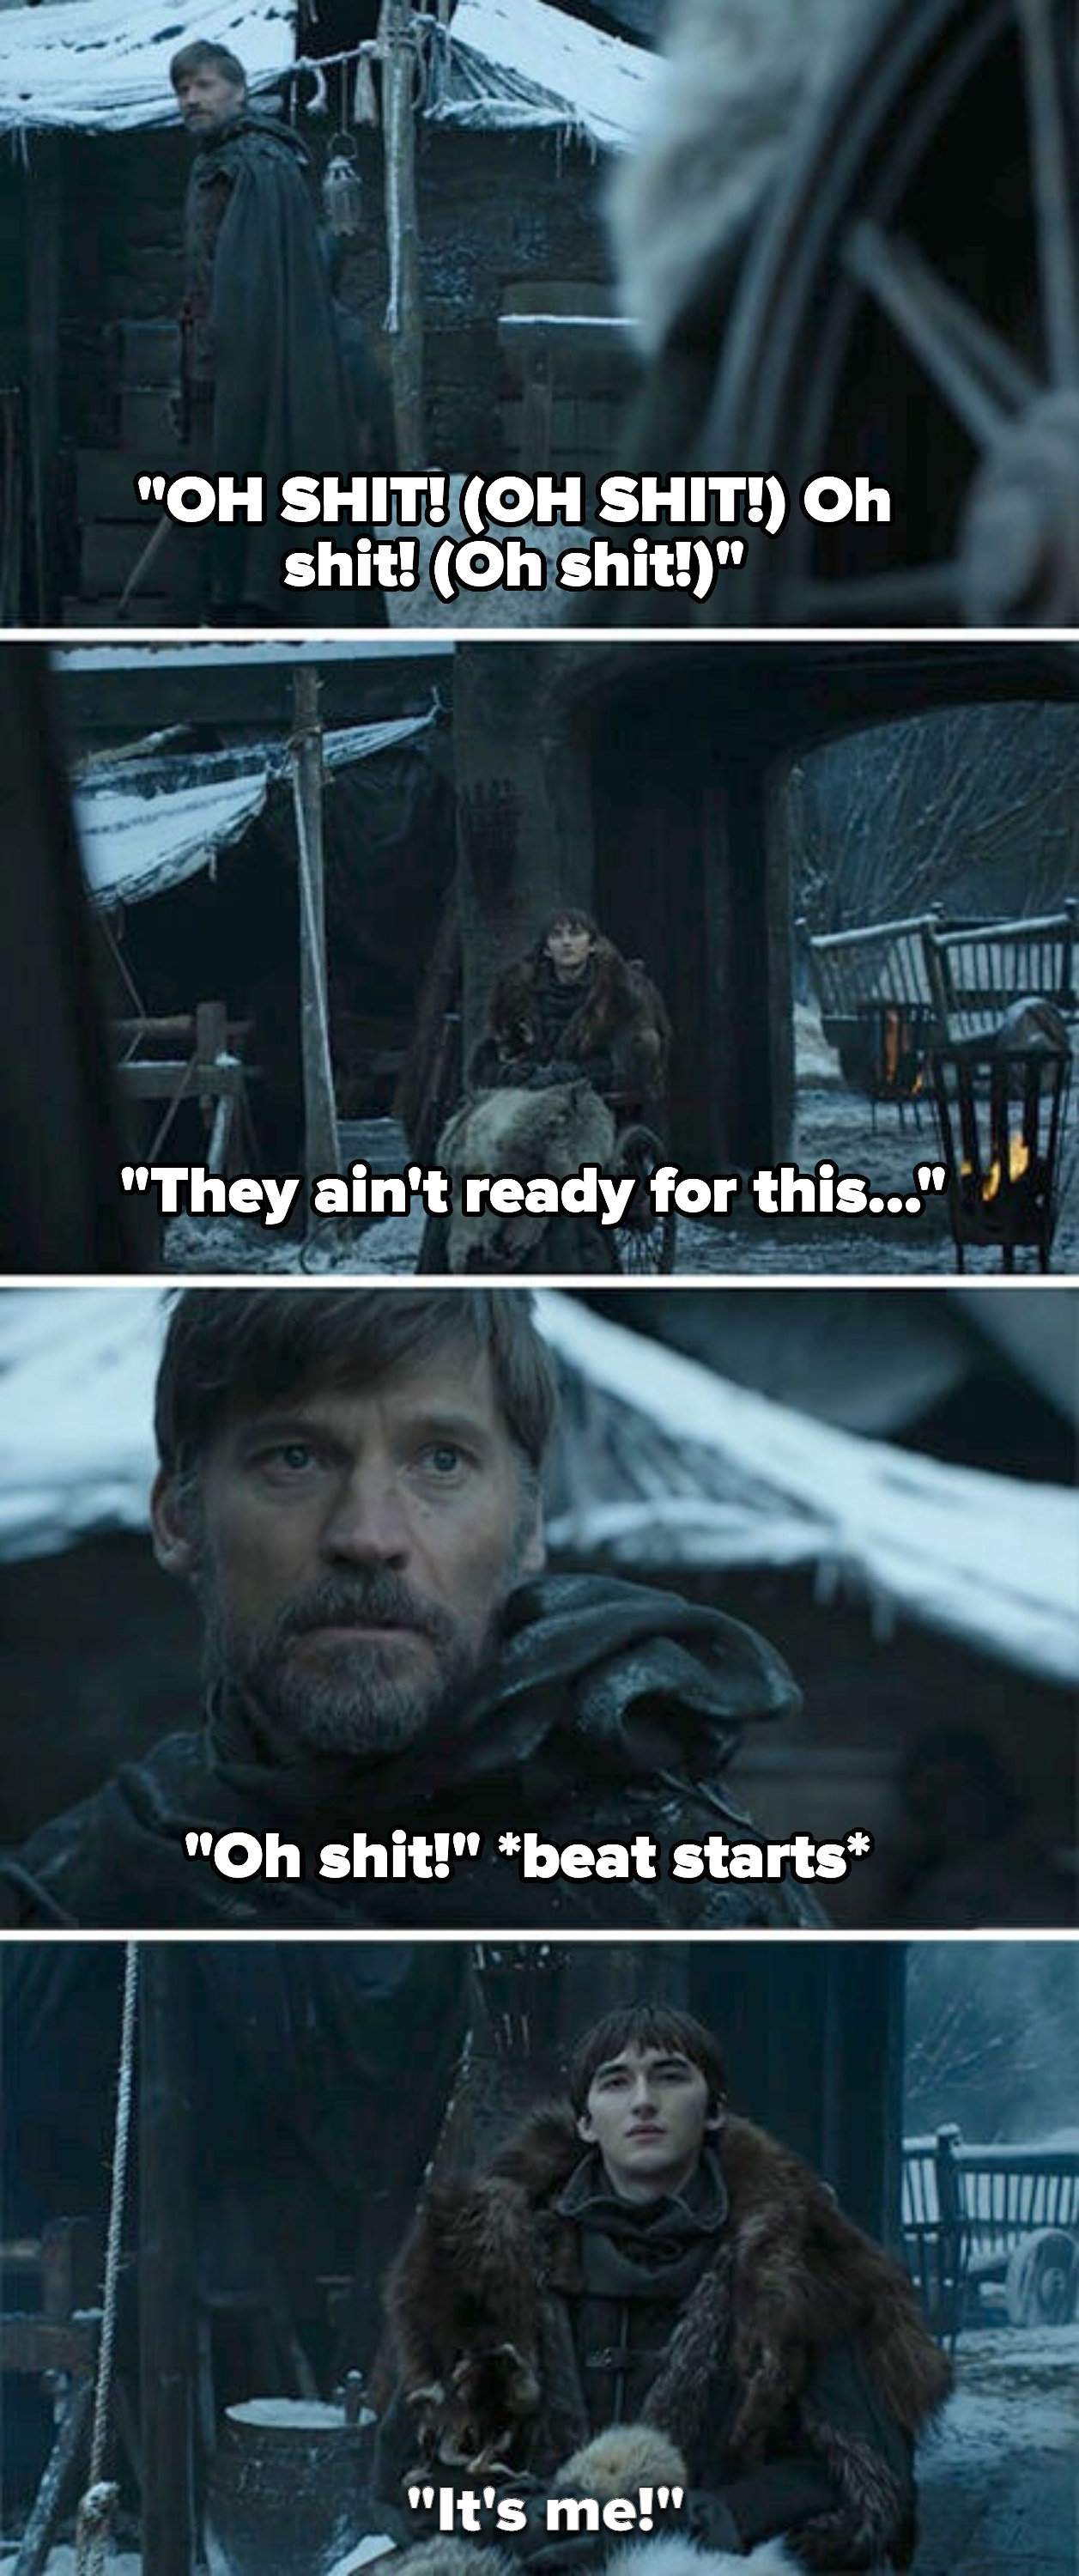 """""""OH SHIT!"""" starts repeating over and over as the song starts/Jaime sees Bran, then the song goes into """"They ain't ready for this"""" and """"It's me"""""""